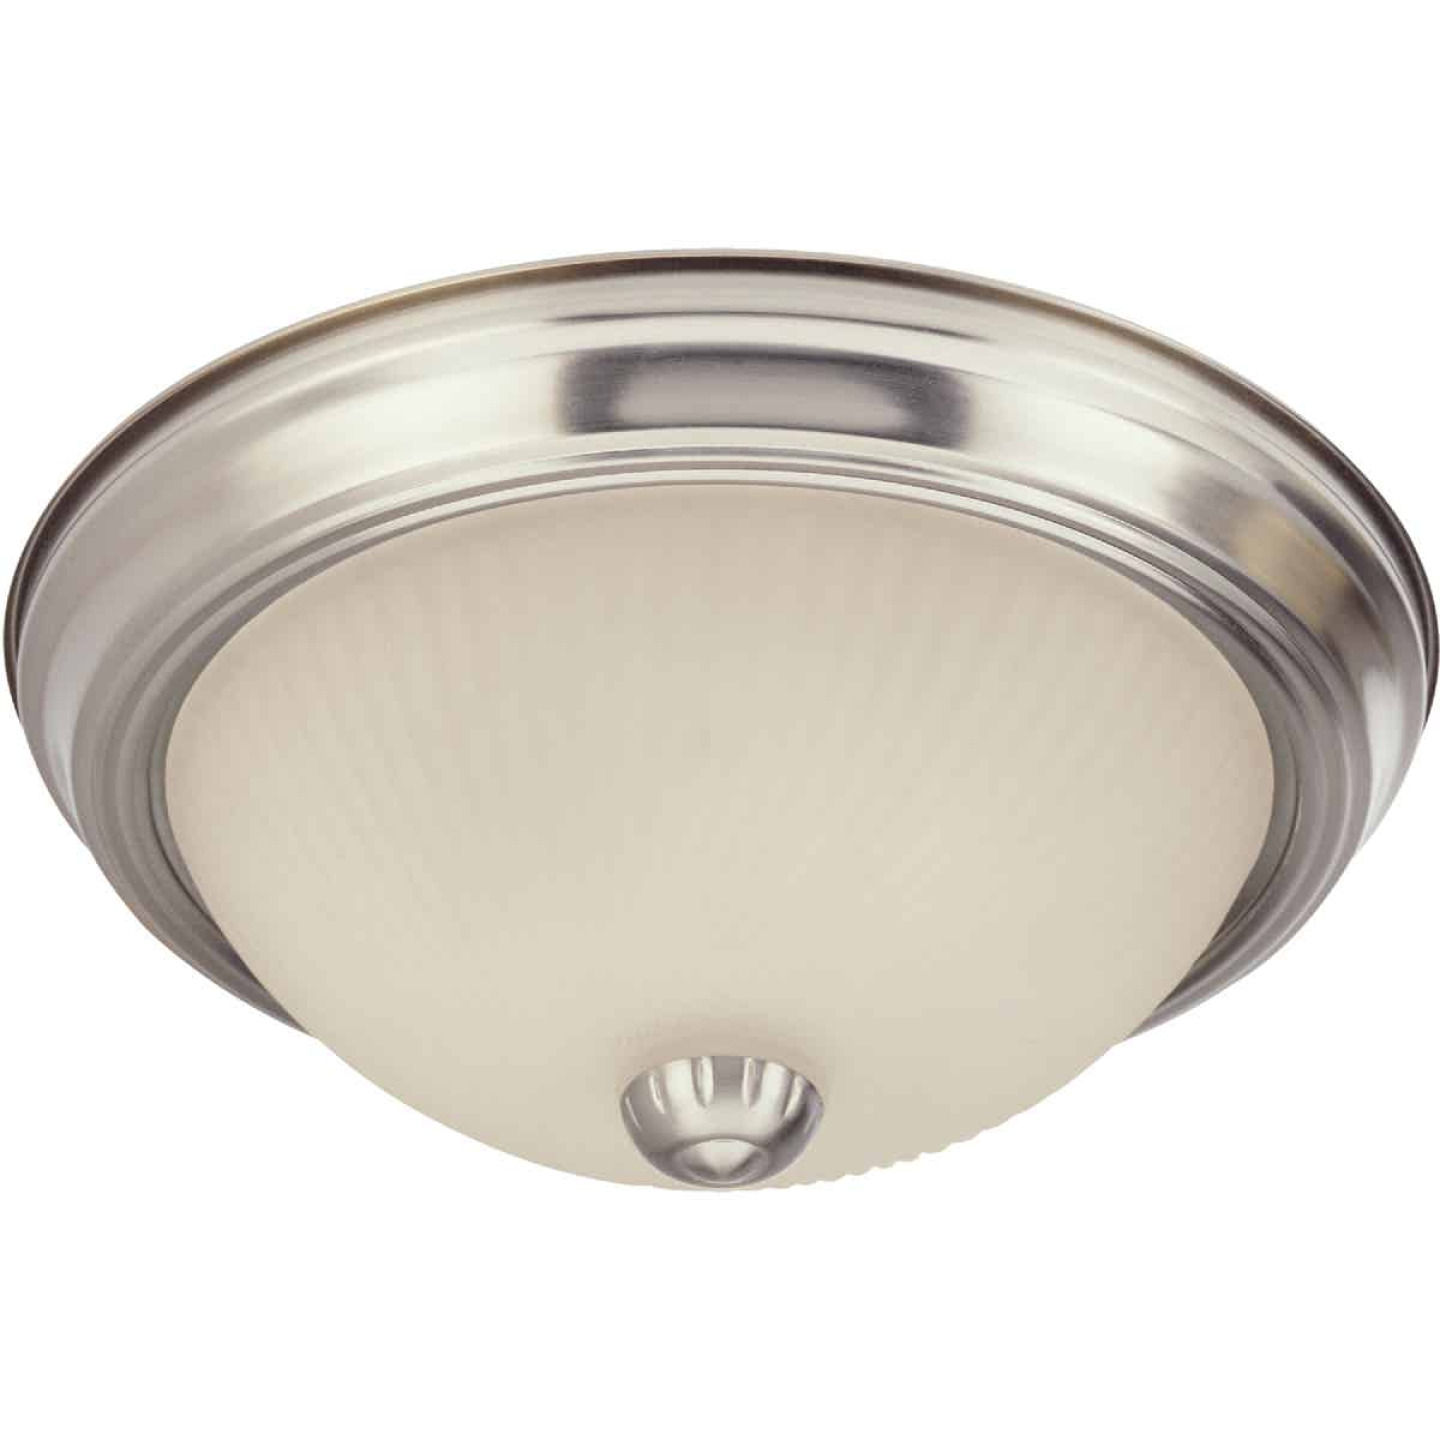 Home Impressions 11 In. Brushed Nickel Incandescent Flush Mount Ceiling Light Fixture Image 1